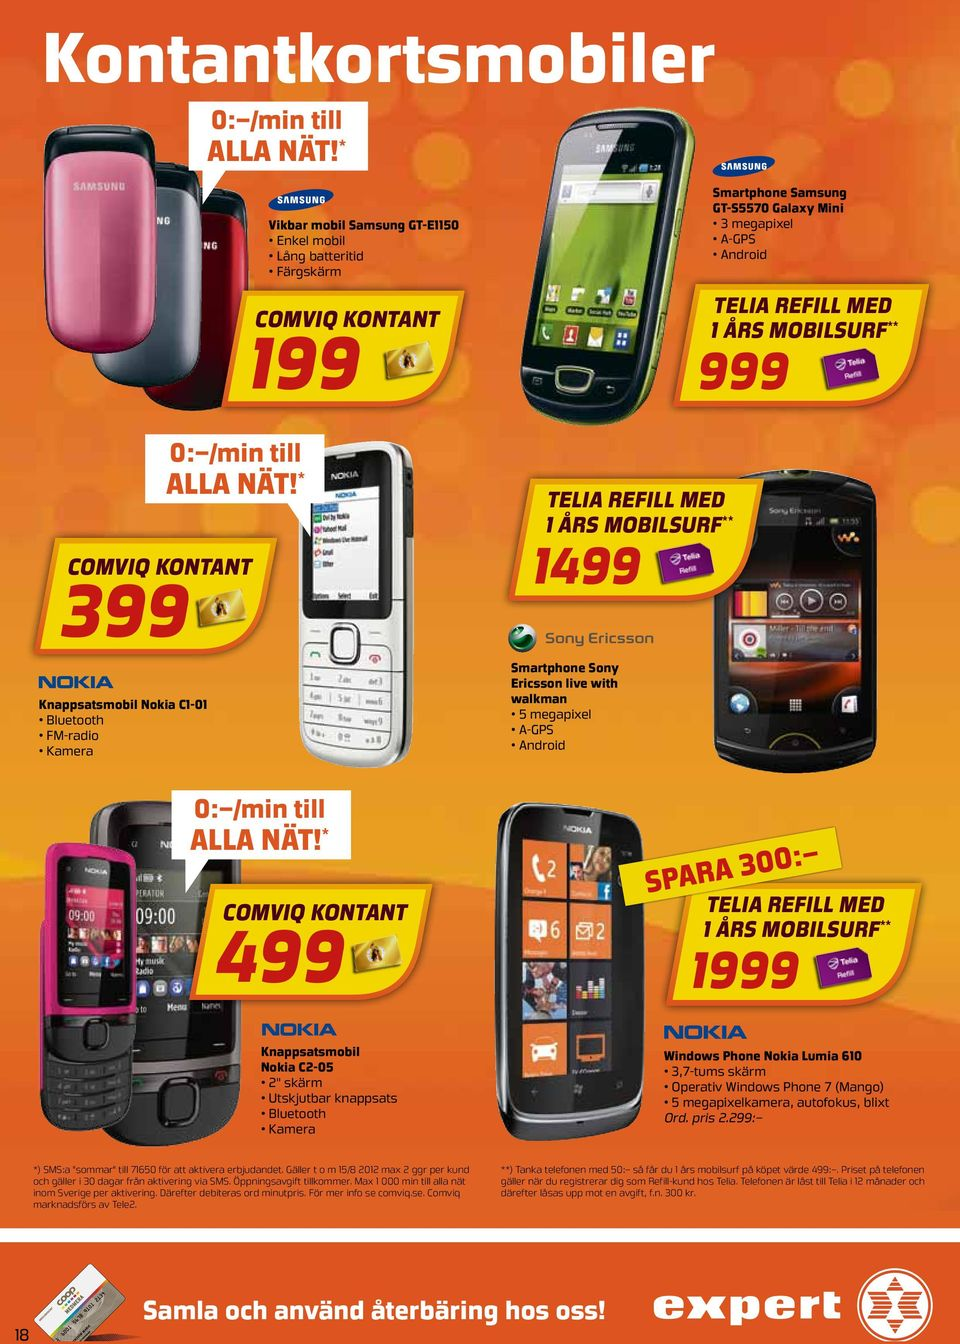 * comviq kontant 499 telia refill med 1 års mobilsurf ** 1499 Smartphone Sony Ericsson live with walkman 5 megapixel A-GPS Android Smartphone Samsung GT-S5570 Galaxy Mini 3 megapixel A-GPS Android